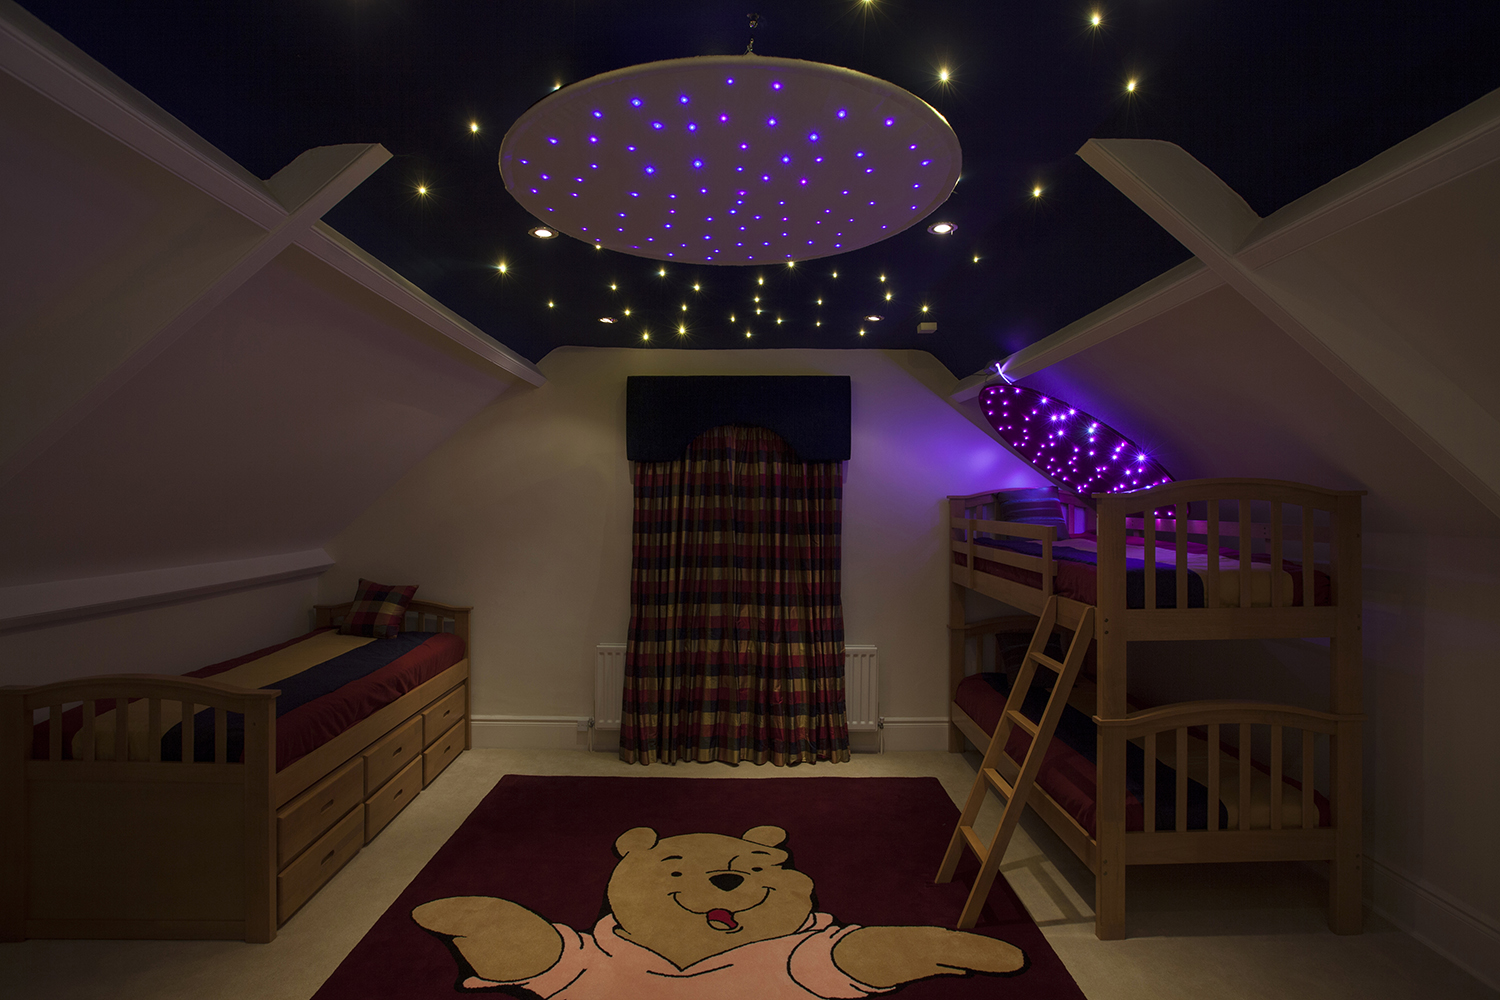 fiber optic star ceiling fabric fixture